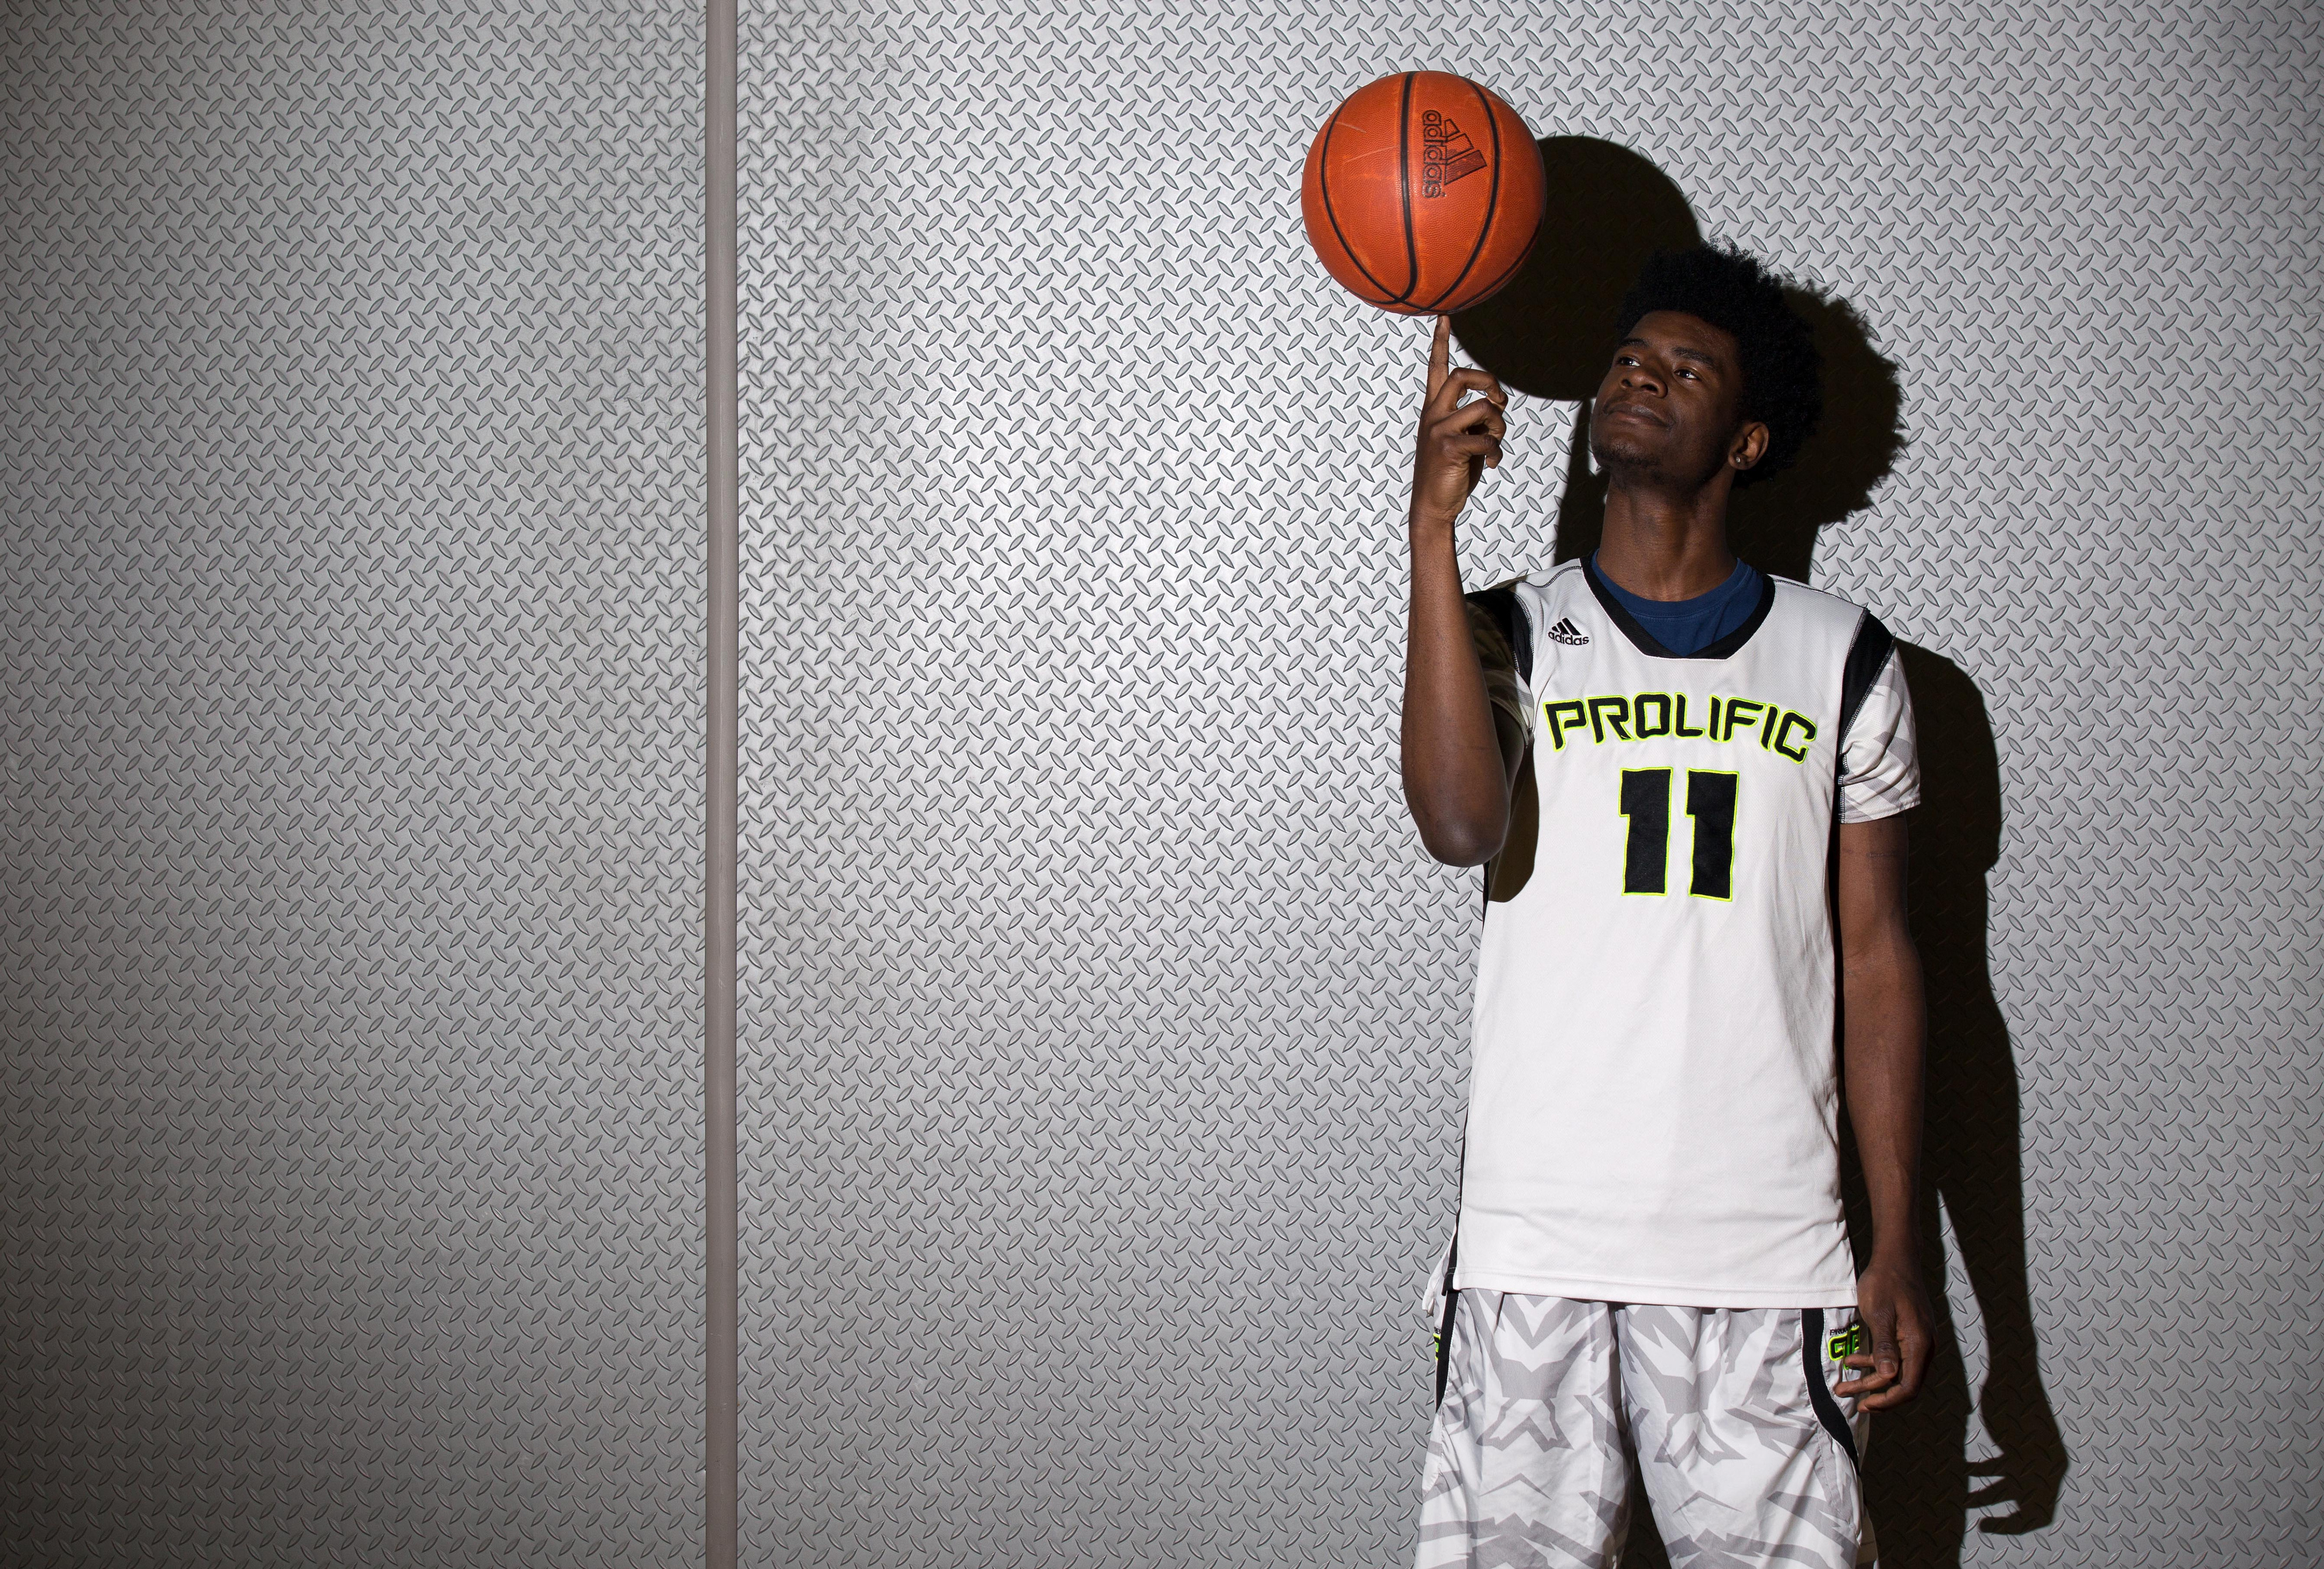 3/22/16 4:42:49 PM -- Fairfield, CA, U.S.A -- Josh Jackson of Prolific Prep in Napa, CA is one of our ALL USA TODAY basketball players of the year candidates. Photos taken at a local gymnasium. -- Photo by Kelley L Cox - USA TODAY Sports Images, Gannett ORG XMIT: US 134652 Josh Jackson 3/22/201 [Via MerlinFTP Drop]